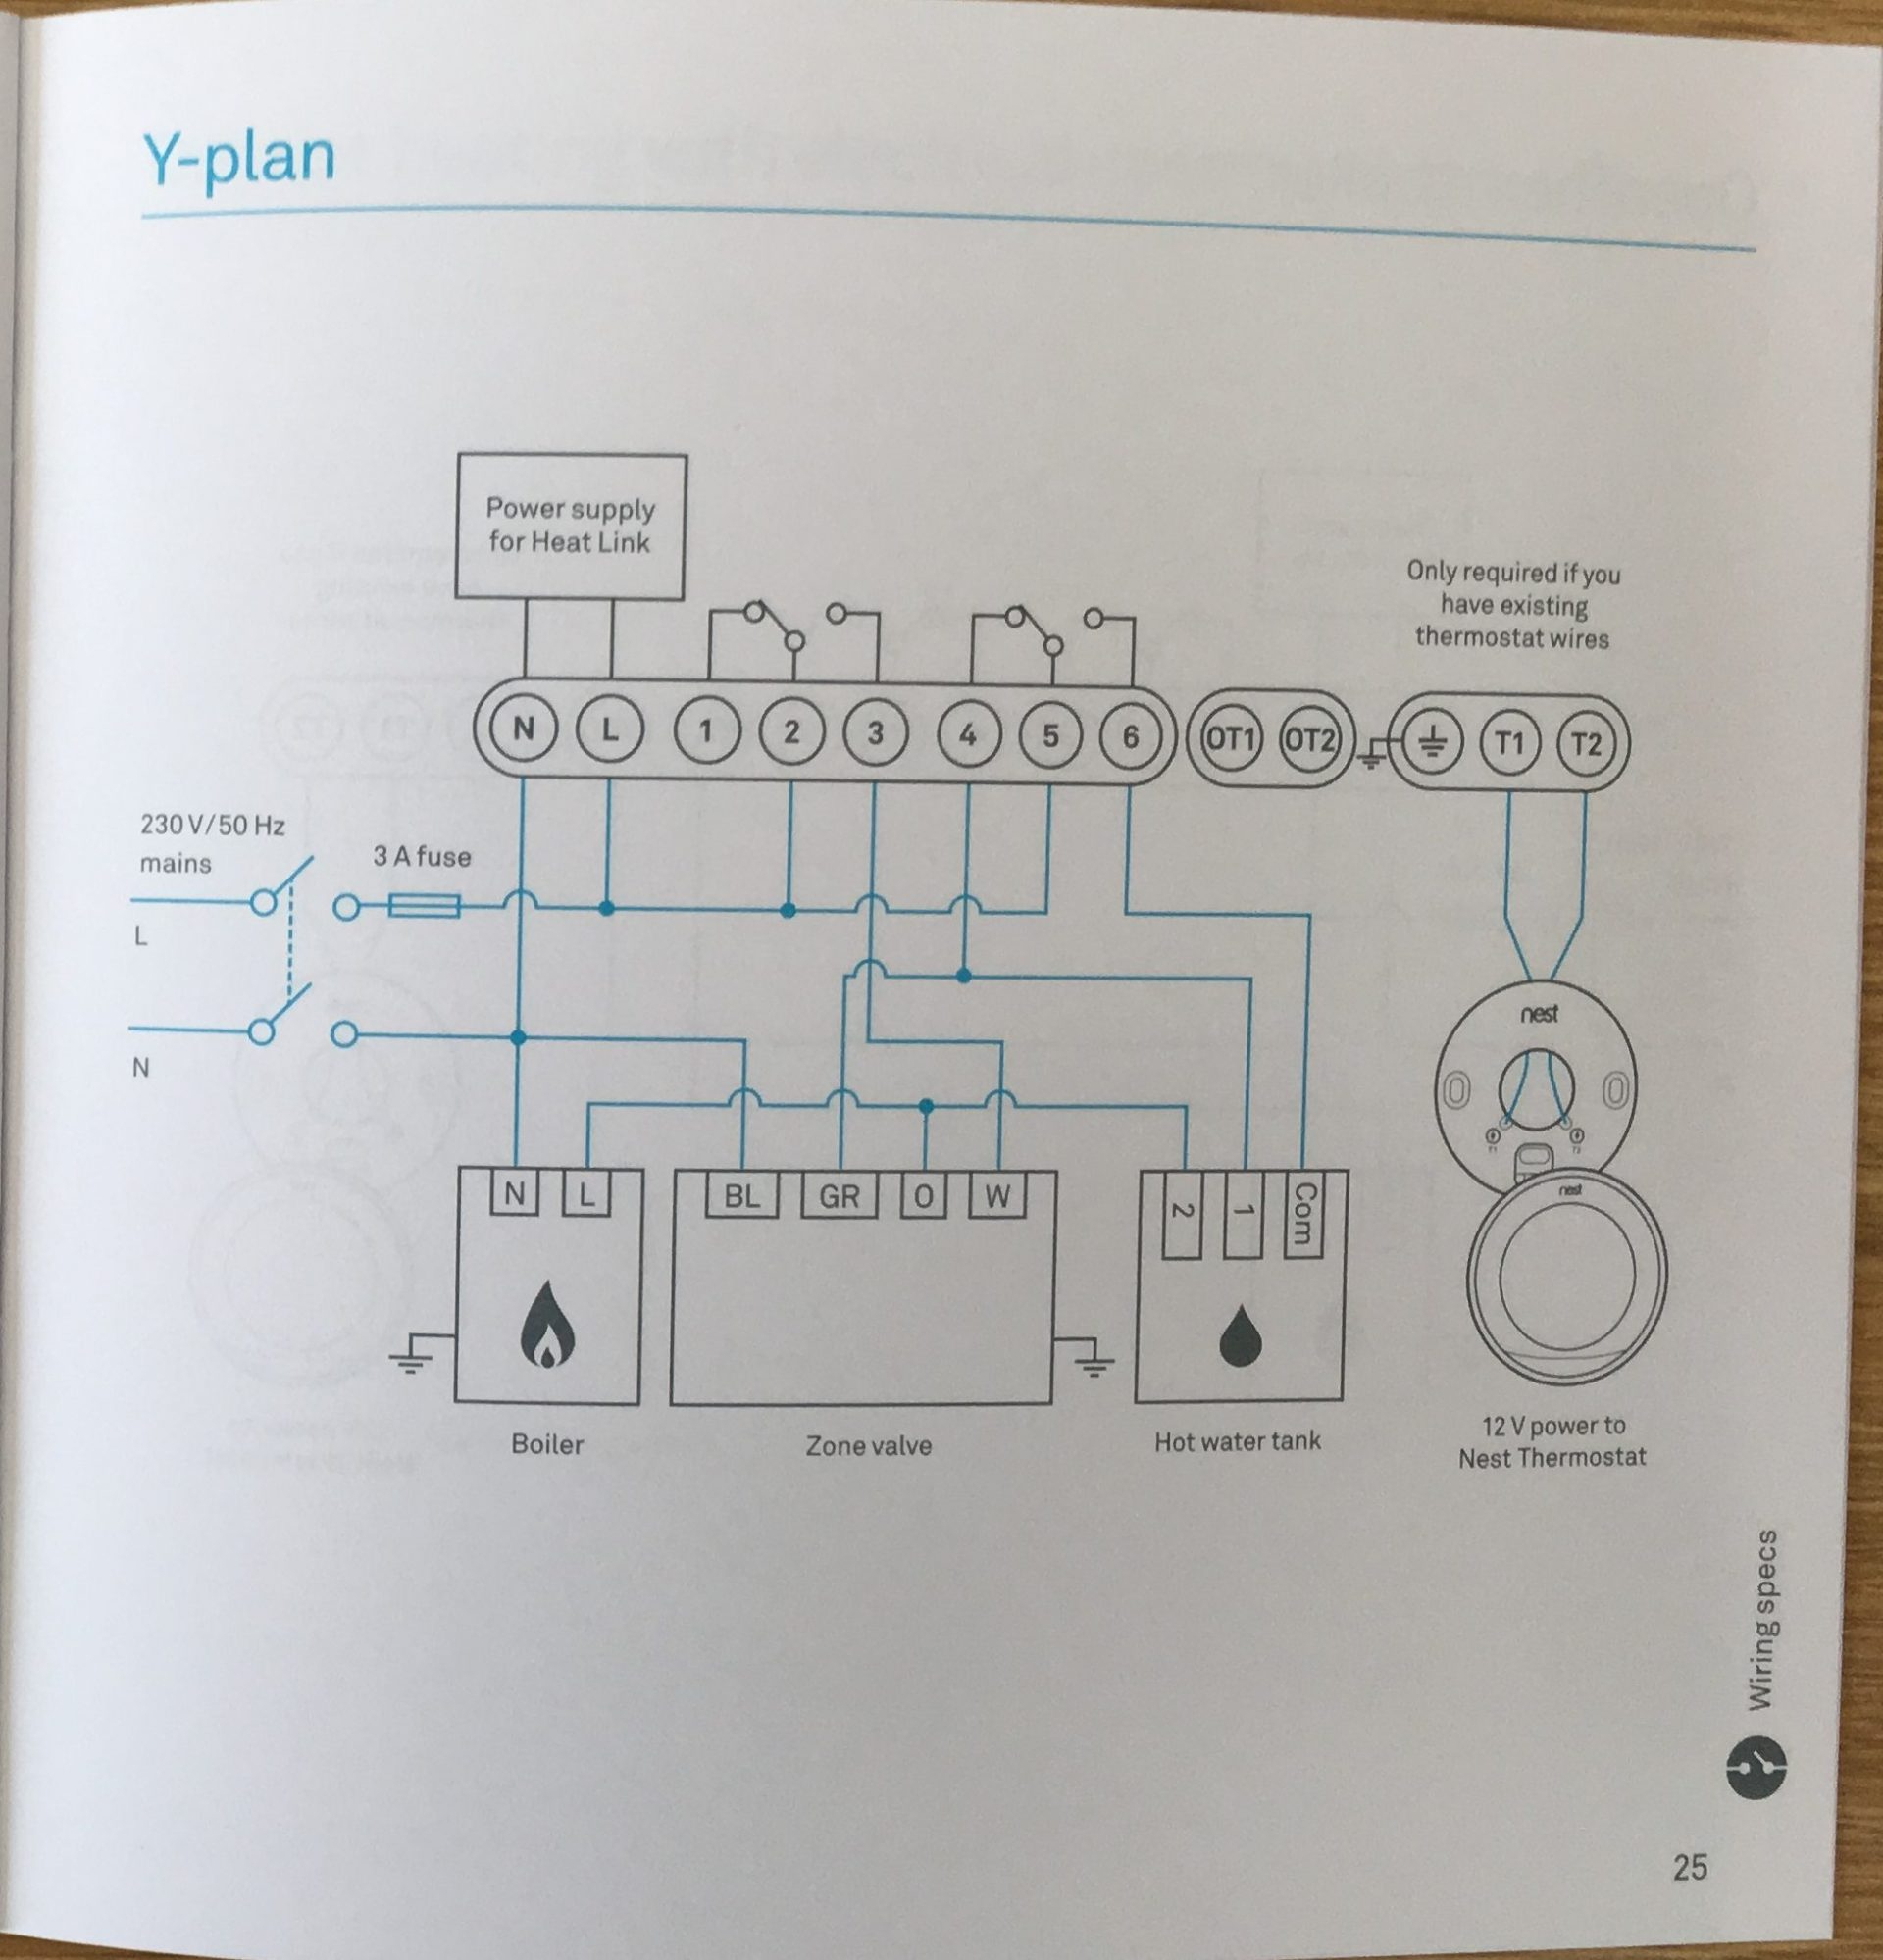 How To Install The Nest Learning Thermostat (3Rd Gen) In A Y-Plan - Nest Wiring Diagram Y Plan